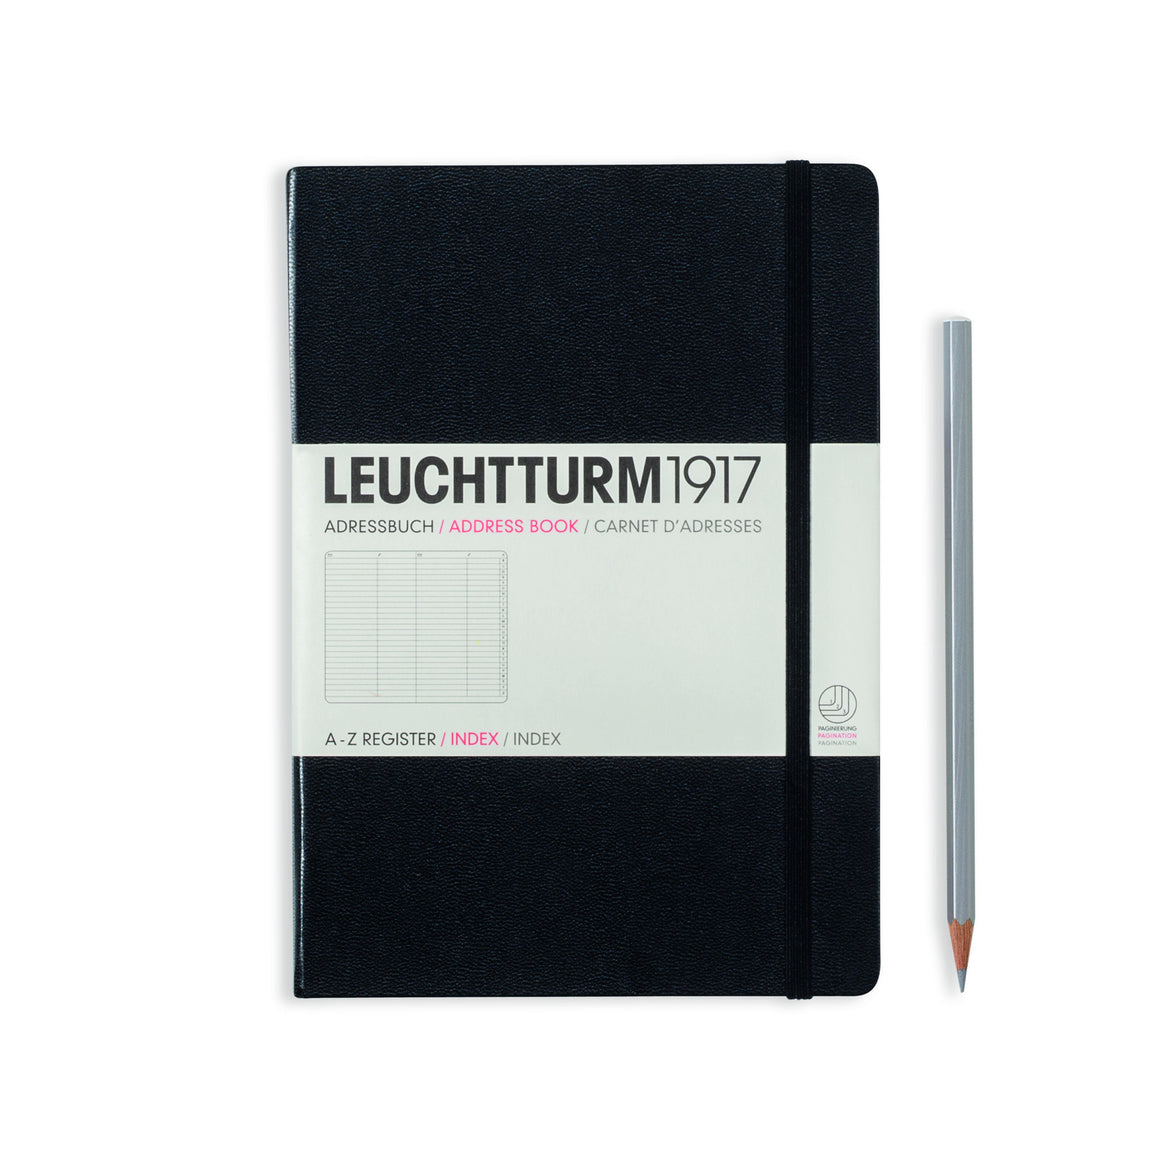 LEUCHTTURM1917 Medium (A5) Address Book Black Cover